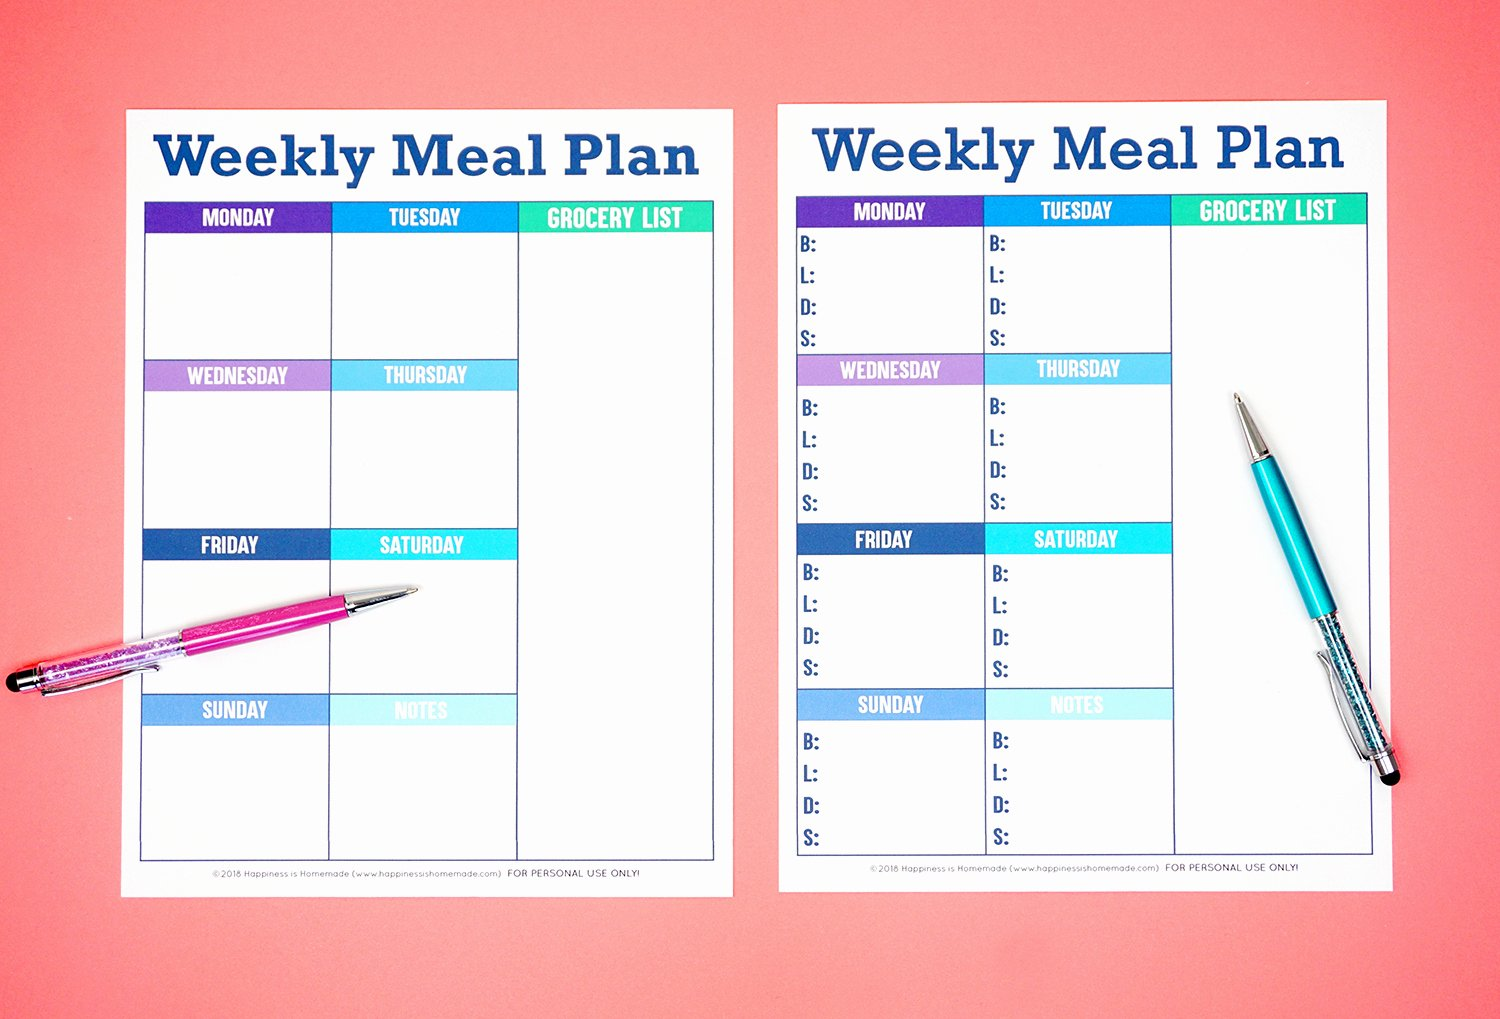 Weekly Meal Planner Template Printable Fresh Printable Weekly Meal Planner Template Happiness is Homemade